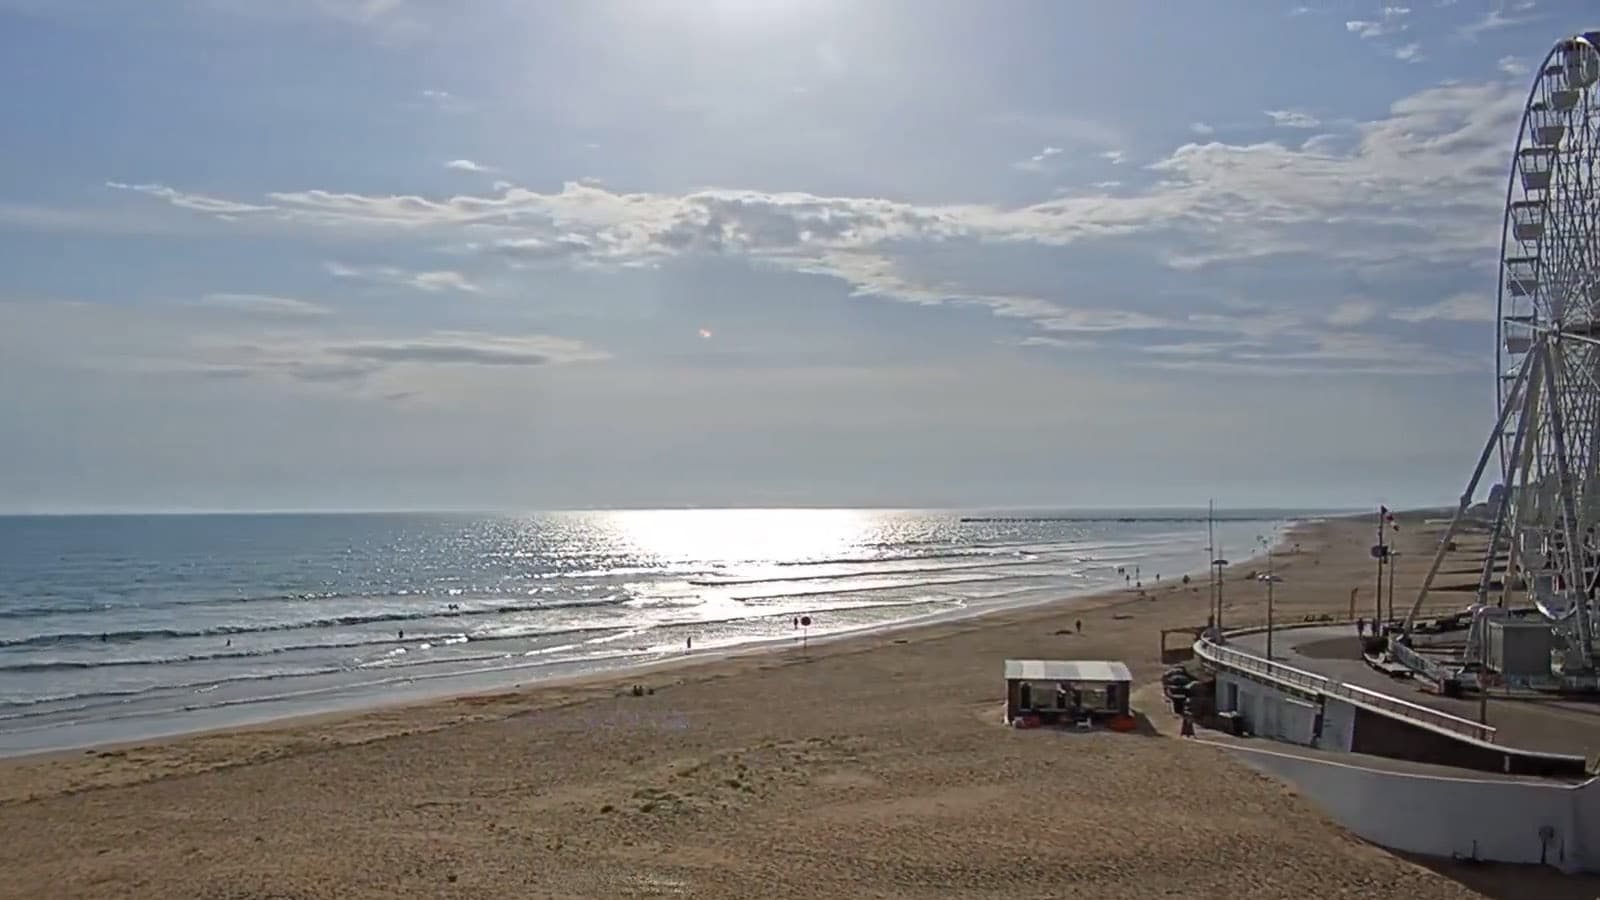 webcam-plagedesoiseaux-saintjeandemonts